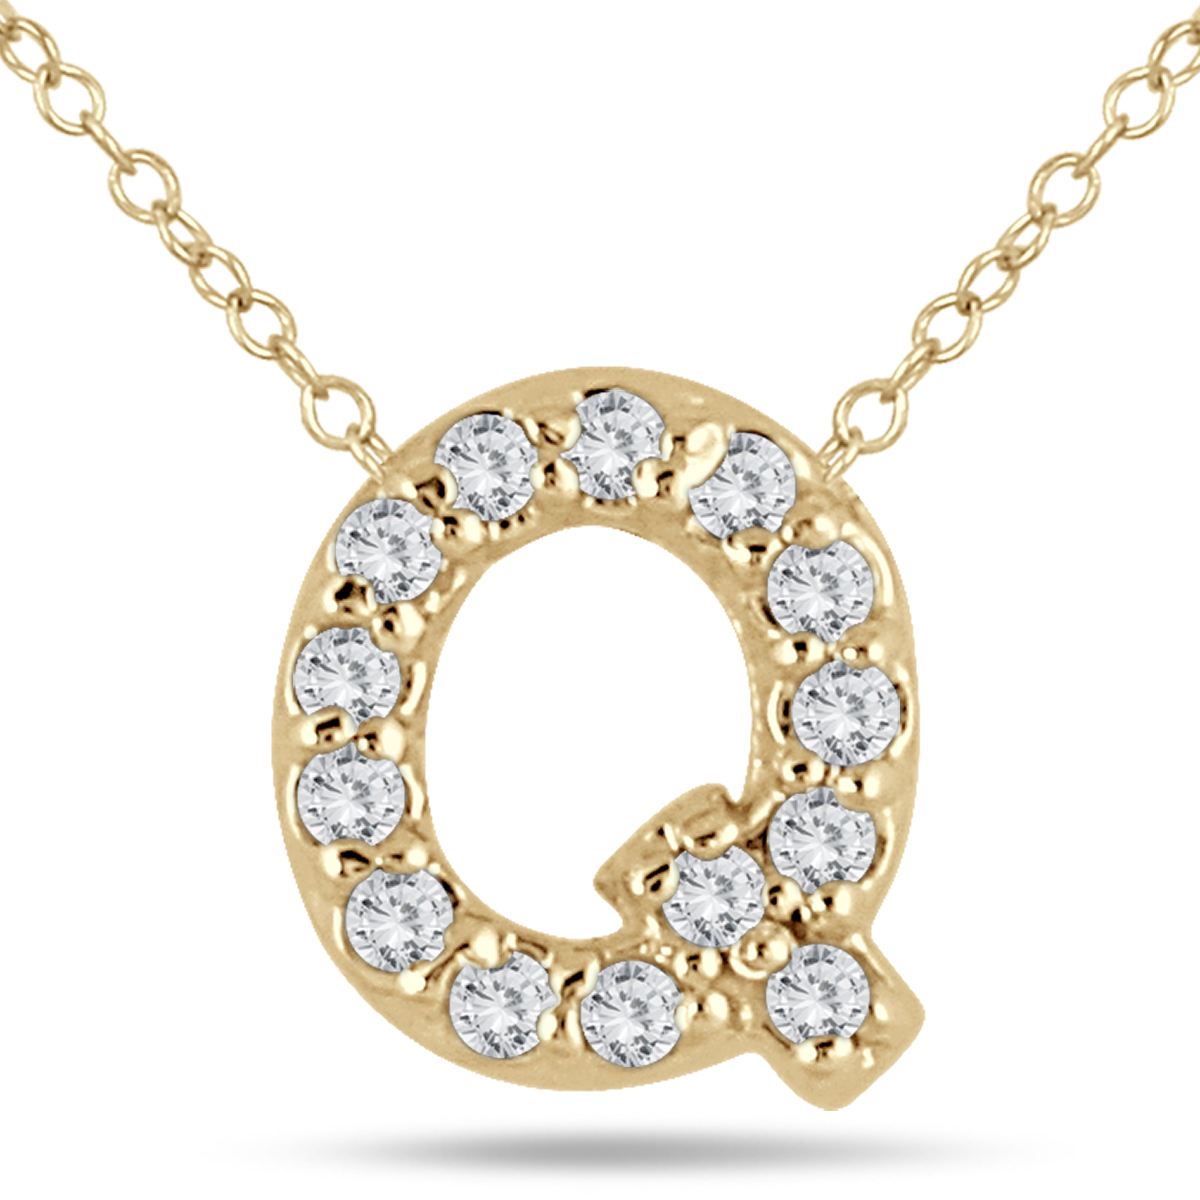 A stunning diamond initial pendant set with genuine white diamonds in 10K yellow gold. This personalized Q diamond pendant is perfect for everyday wear. The pendant features 14 fiery white diamonds weighing a total of .11 carats. The stones are graded with an J-K-L color and an I2-I3 clarity. The stones have a white color and a sparkle. Diamond initial pendants are a stylish symbol of self or those one loves. The pendant measures 8x7mm and hangs from an 18 inch chain also crafted in yellow gold. A nice charm size pendant that can be worn alone or with other necklaces. Detailed setting workmanship combine with a durable gold setting and hand matched diamonds to create a personalized pendant that is sure to be treasured forever.